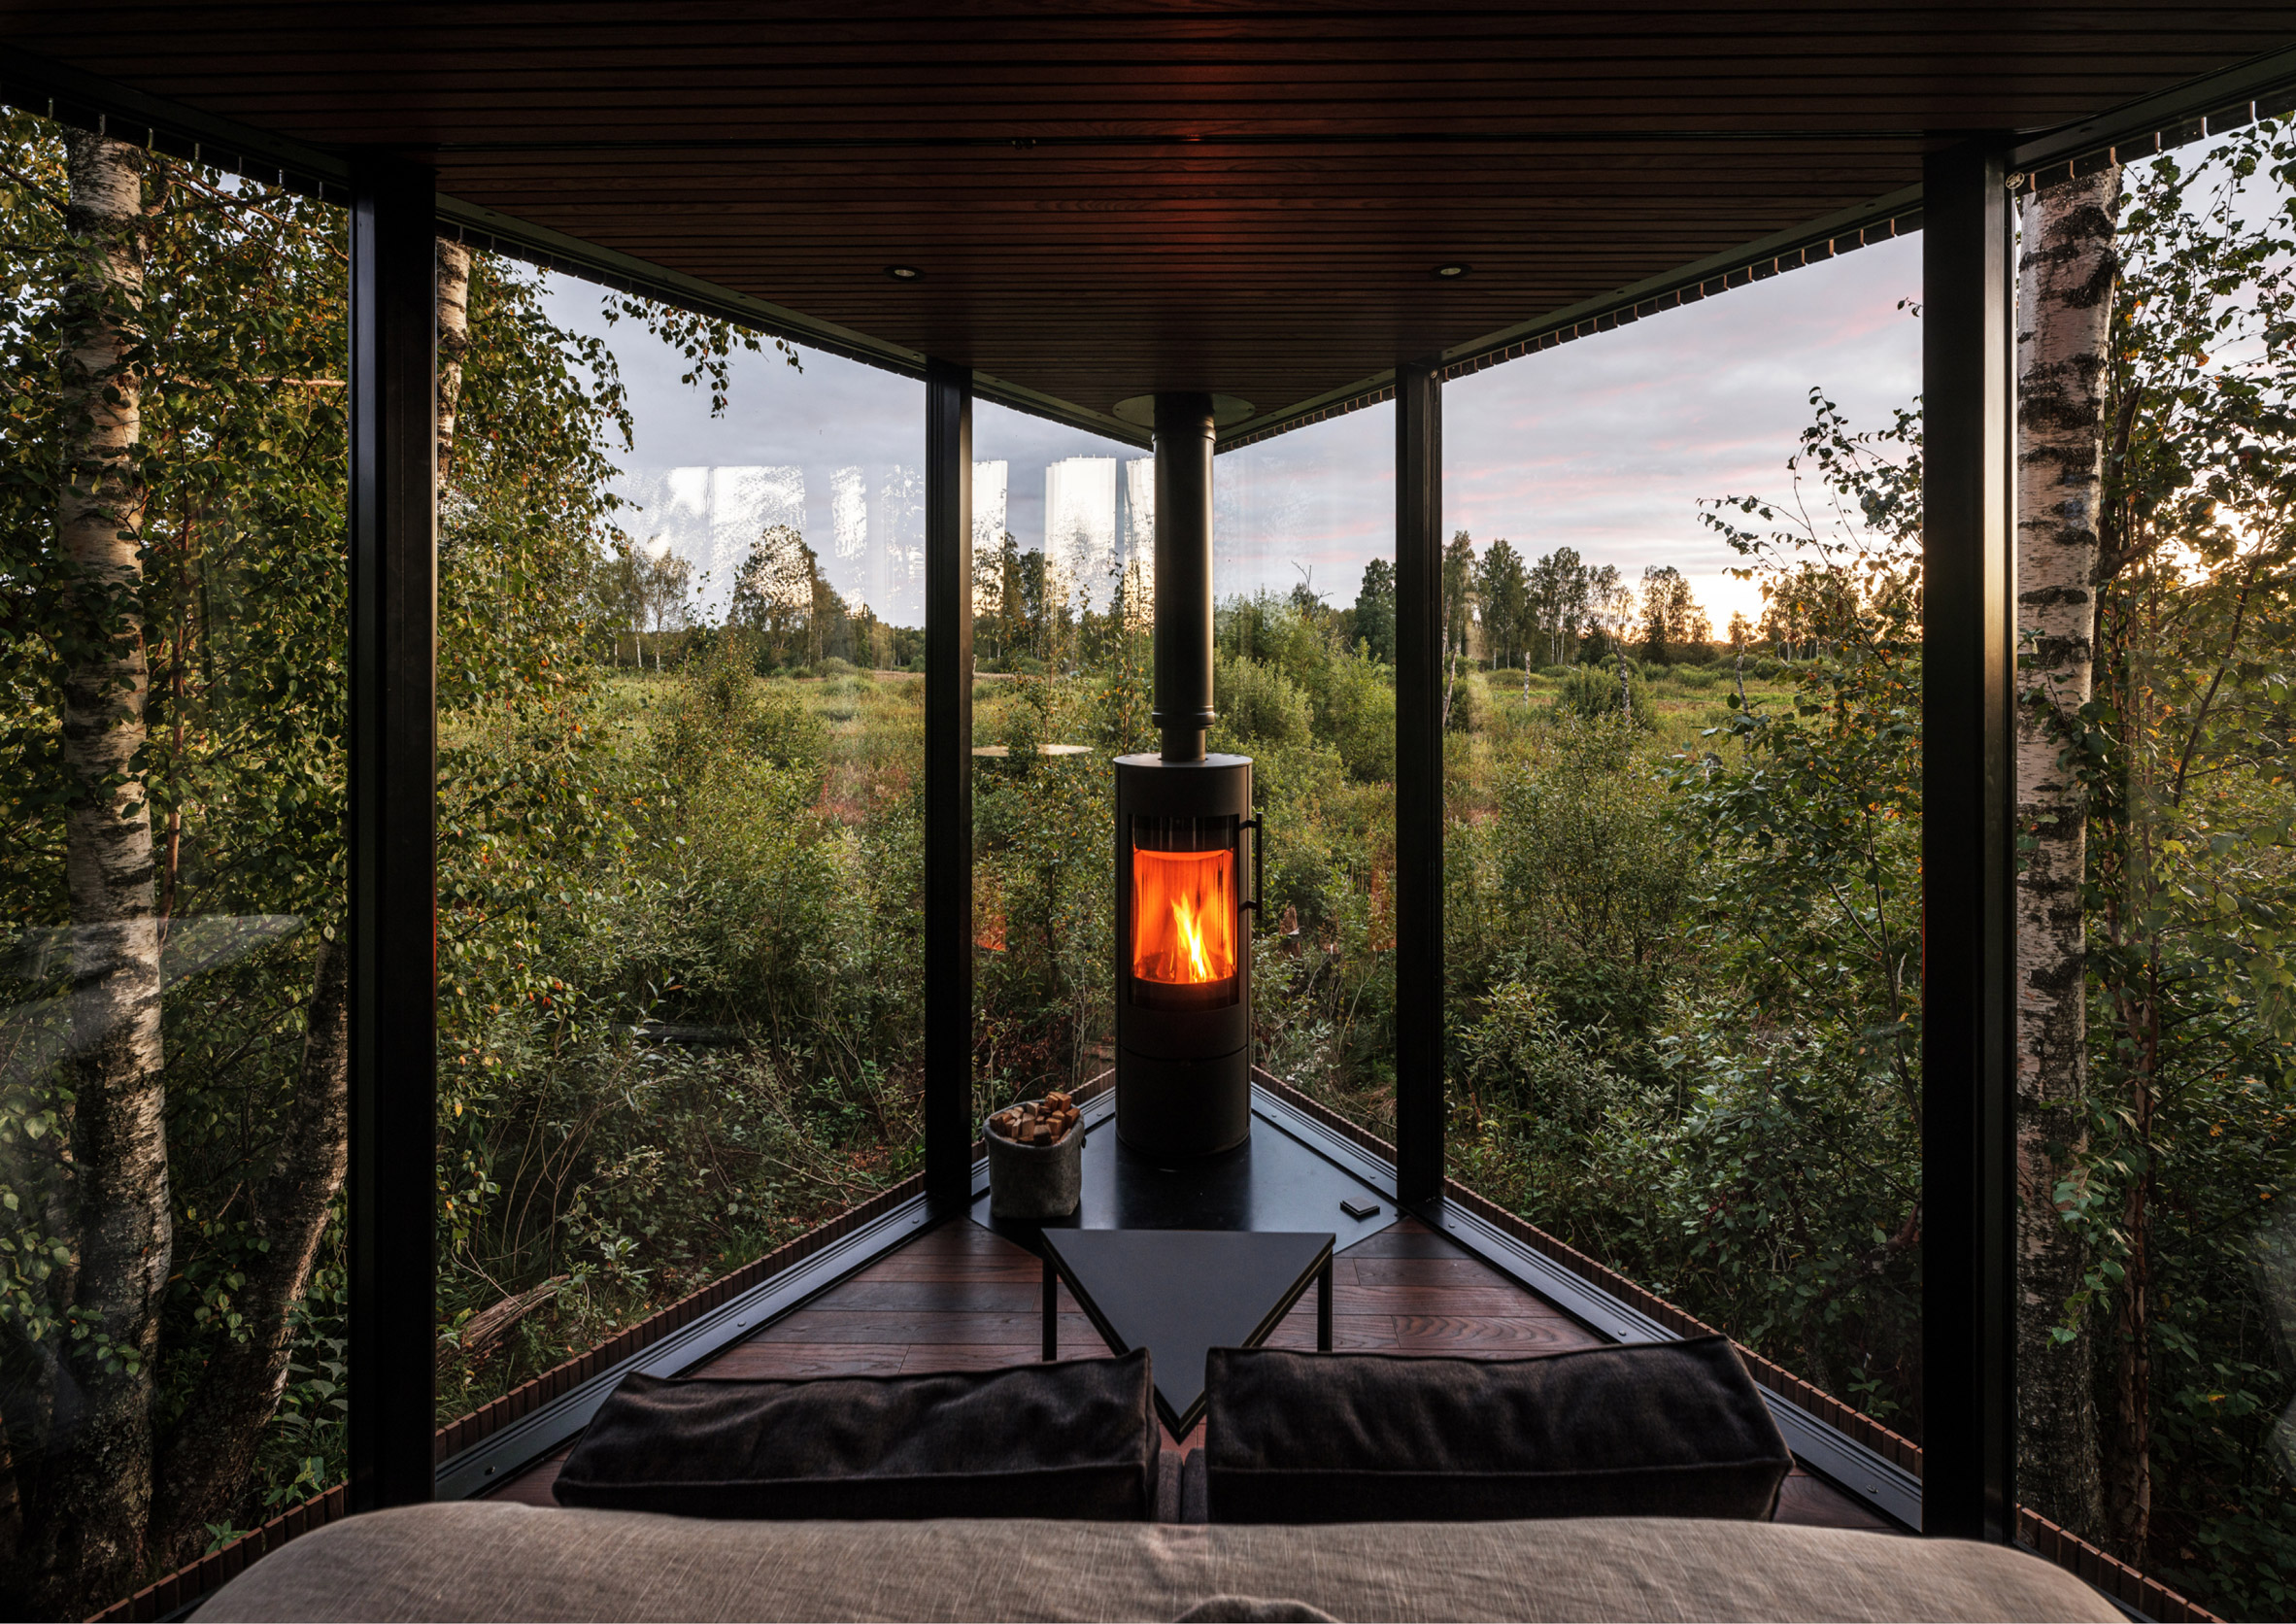 The glass-walled interior of a wooden cabin